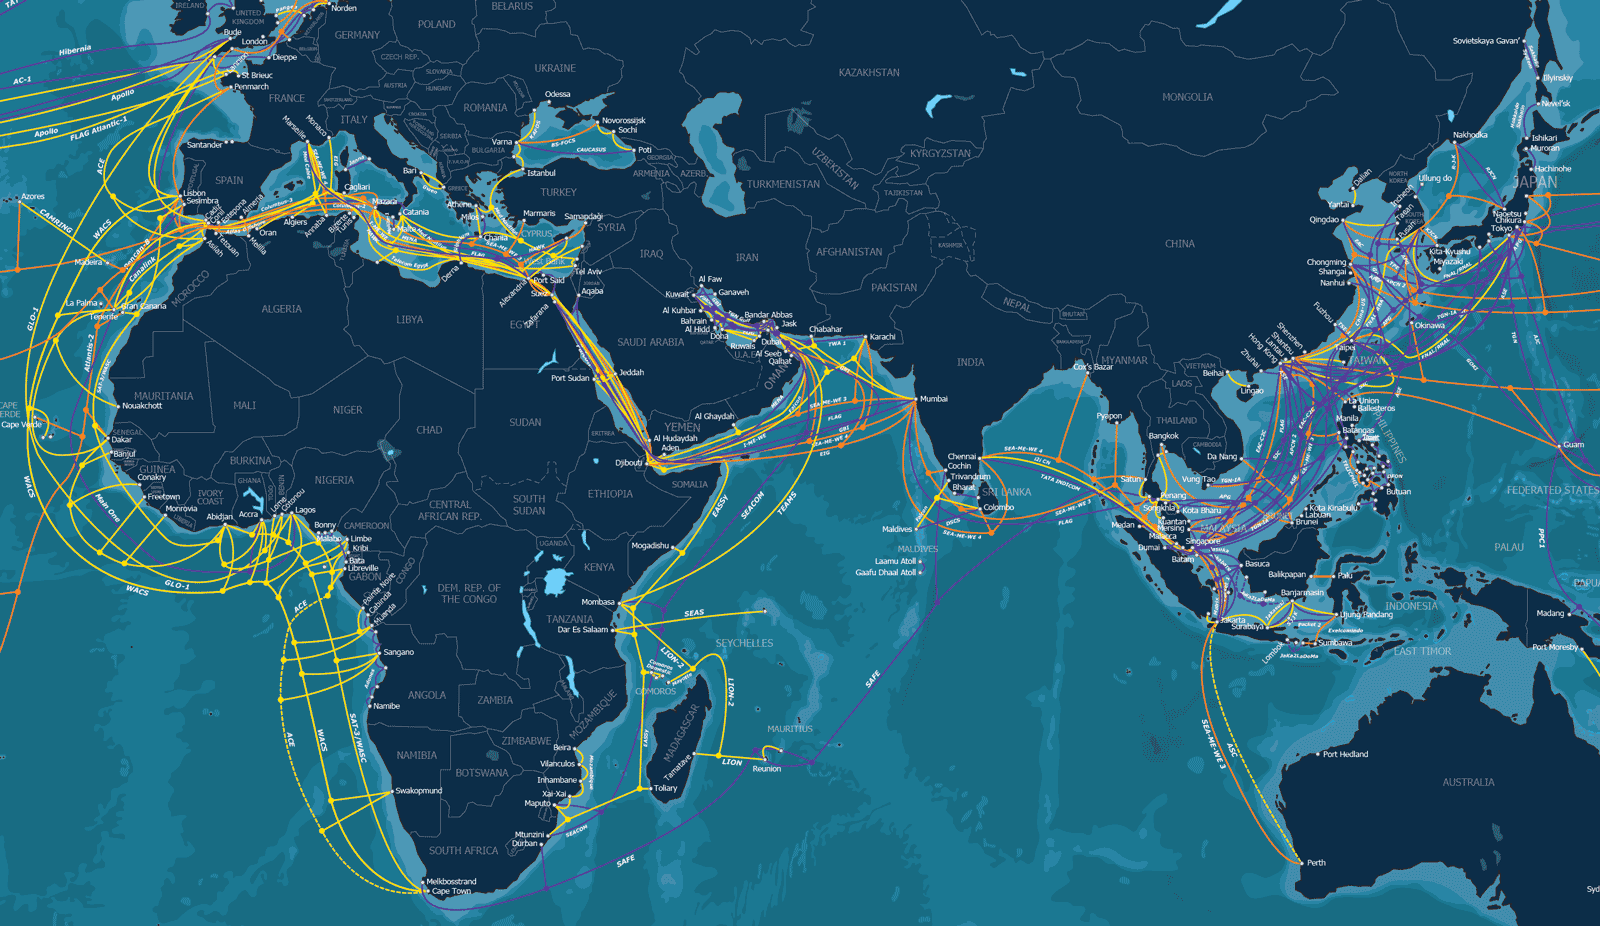 Dozens of undersea network cables connect cities, countries, and continents.